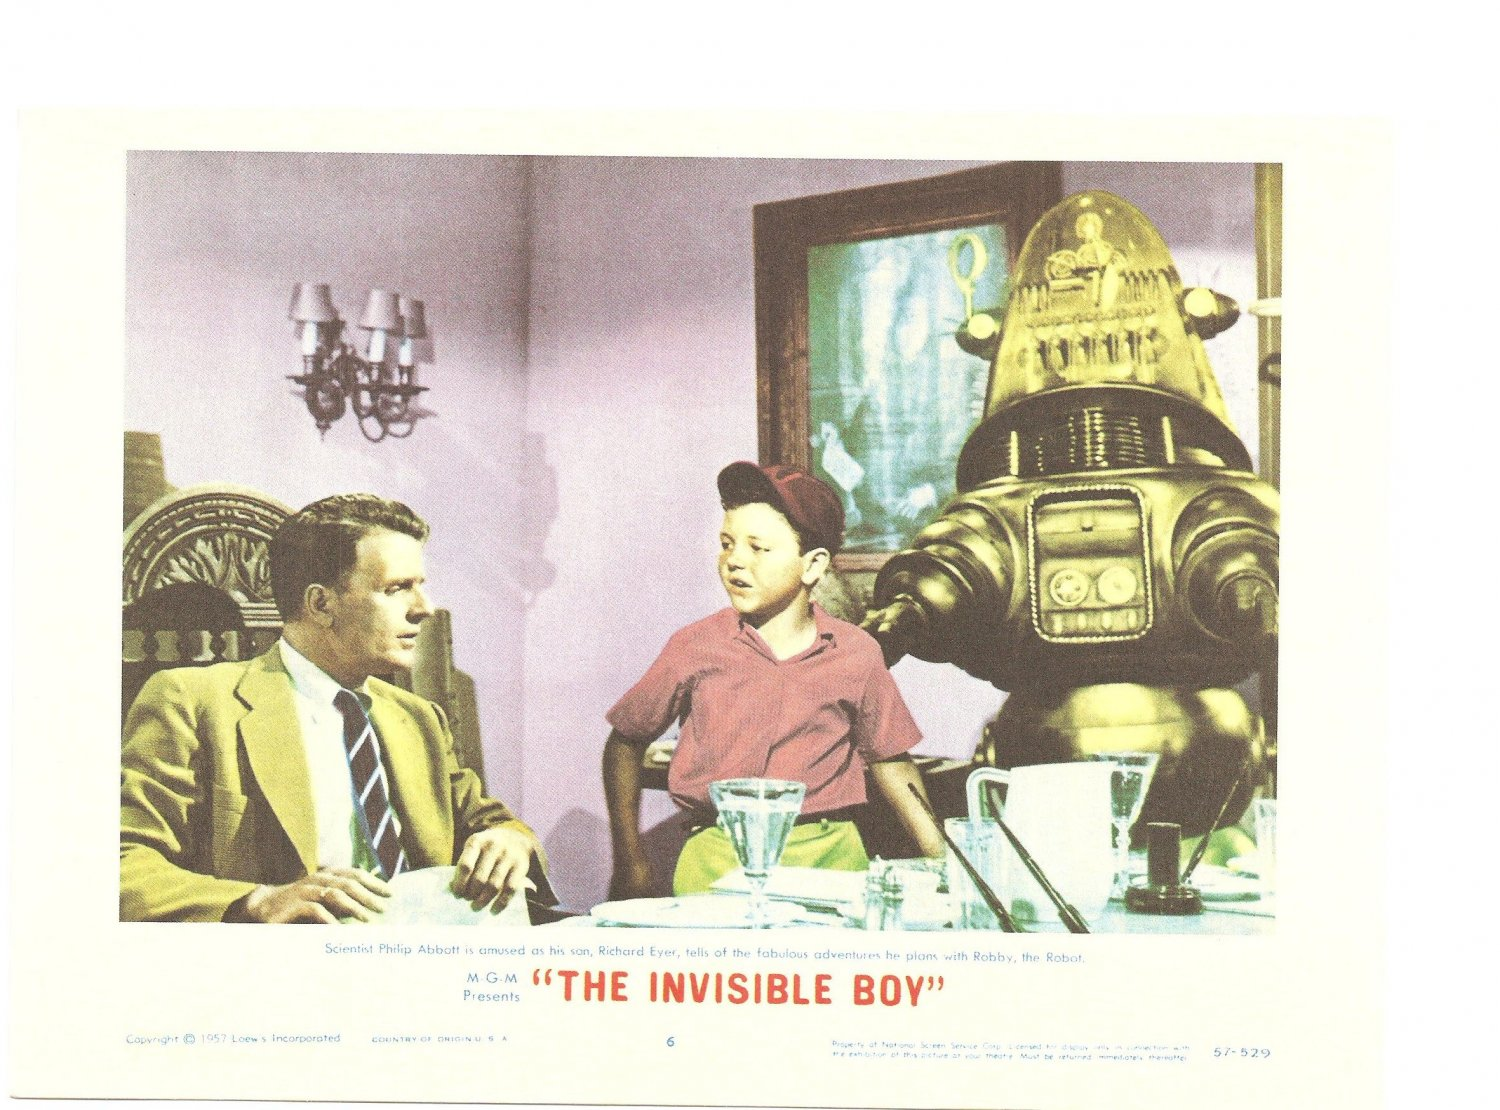 The Invisible Boy Forbidden Planet Lobby Card Repro 2006 Turner Entertainment 57-529 Promo